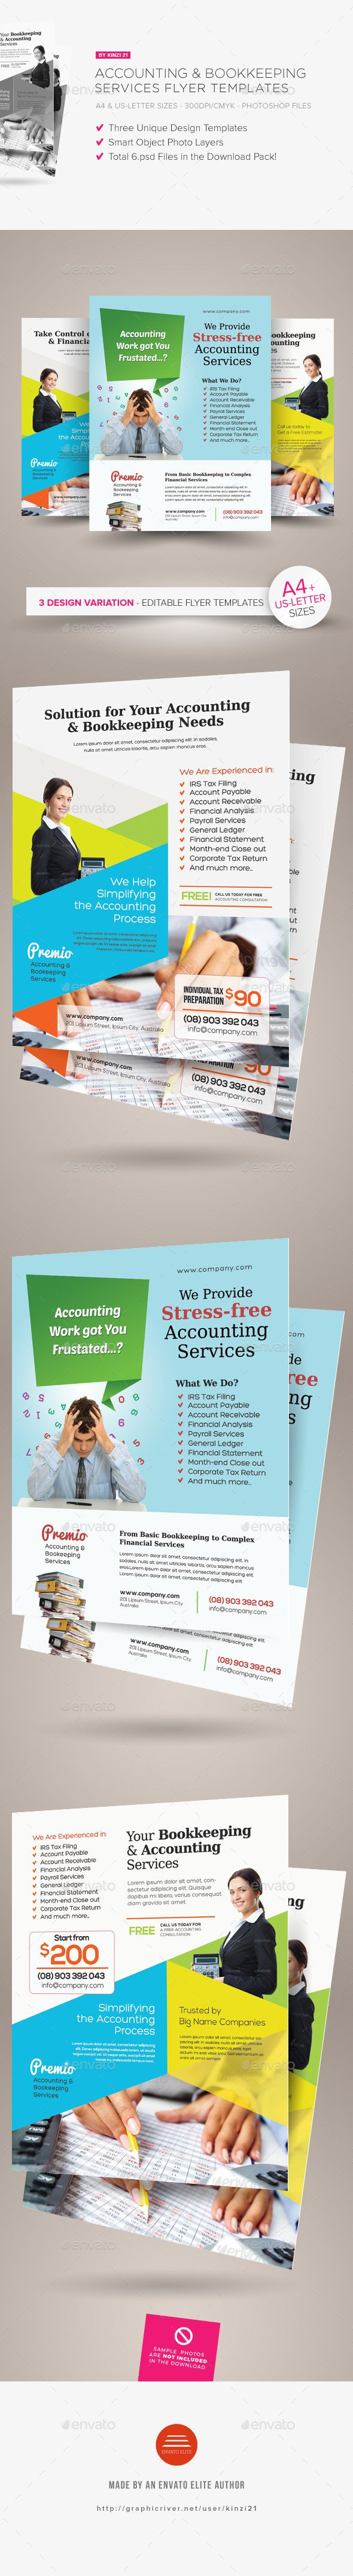 40 best print templates images on pinterest print templates accounting and bookkeeping services flyers fandeluxe Image collections